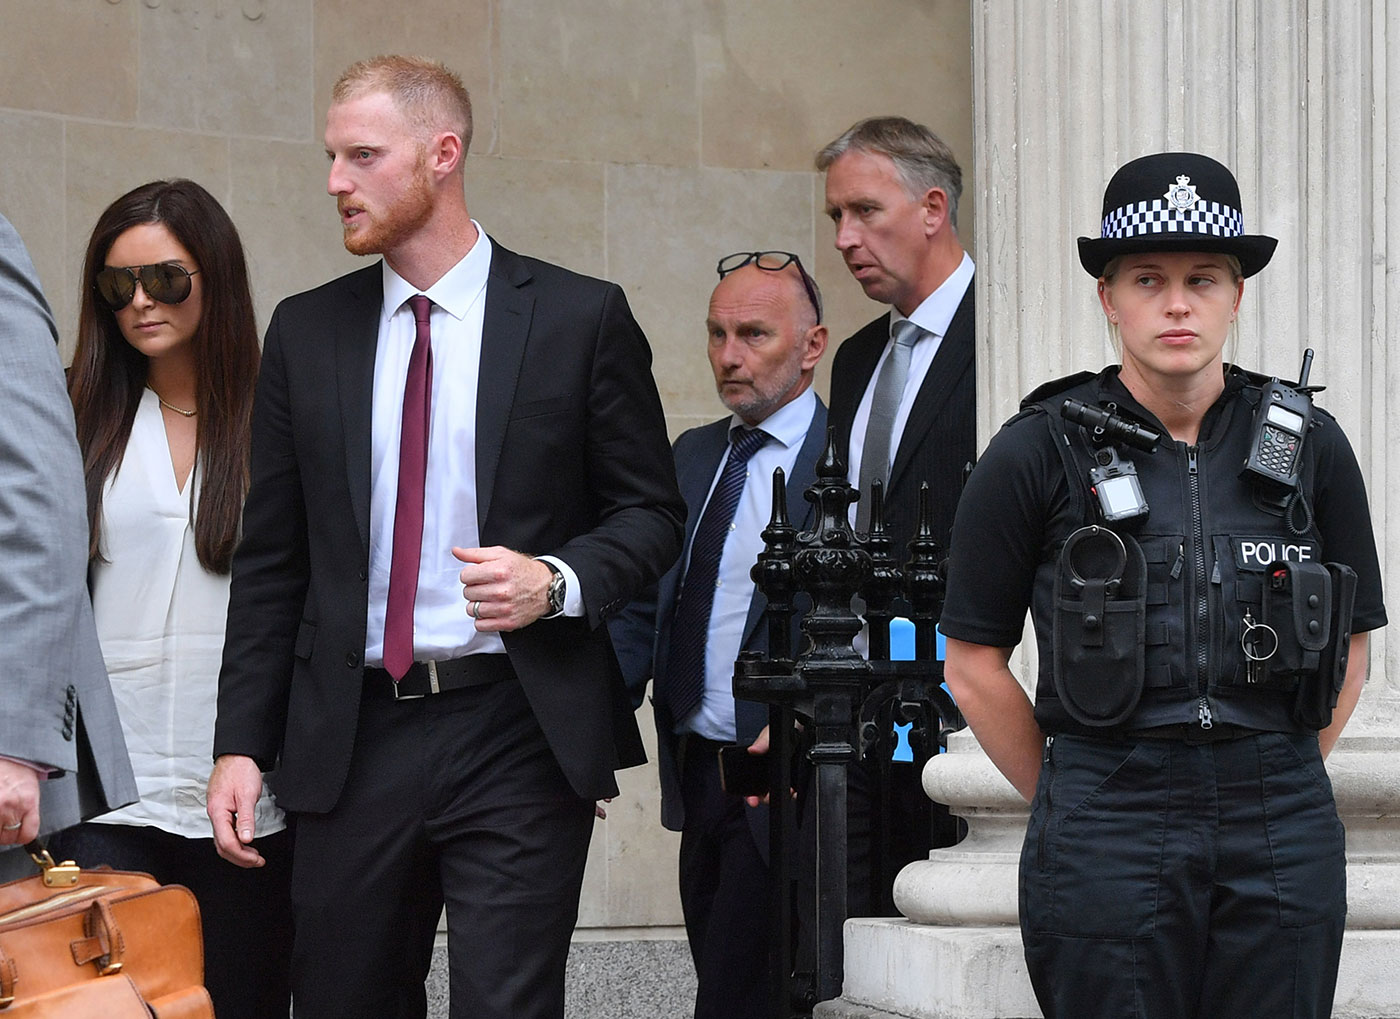 Ben Stokes has been found not guilty of affray